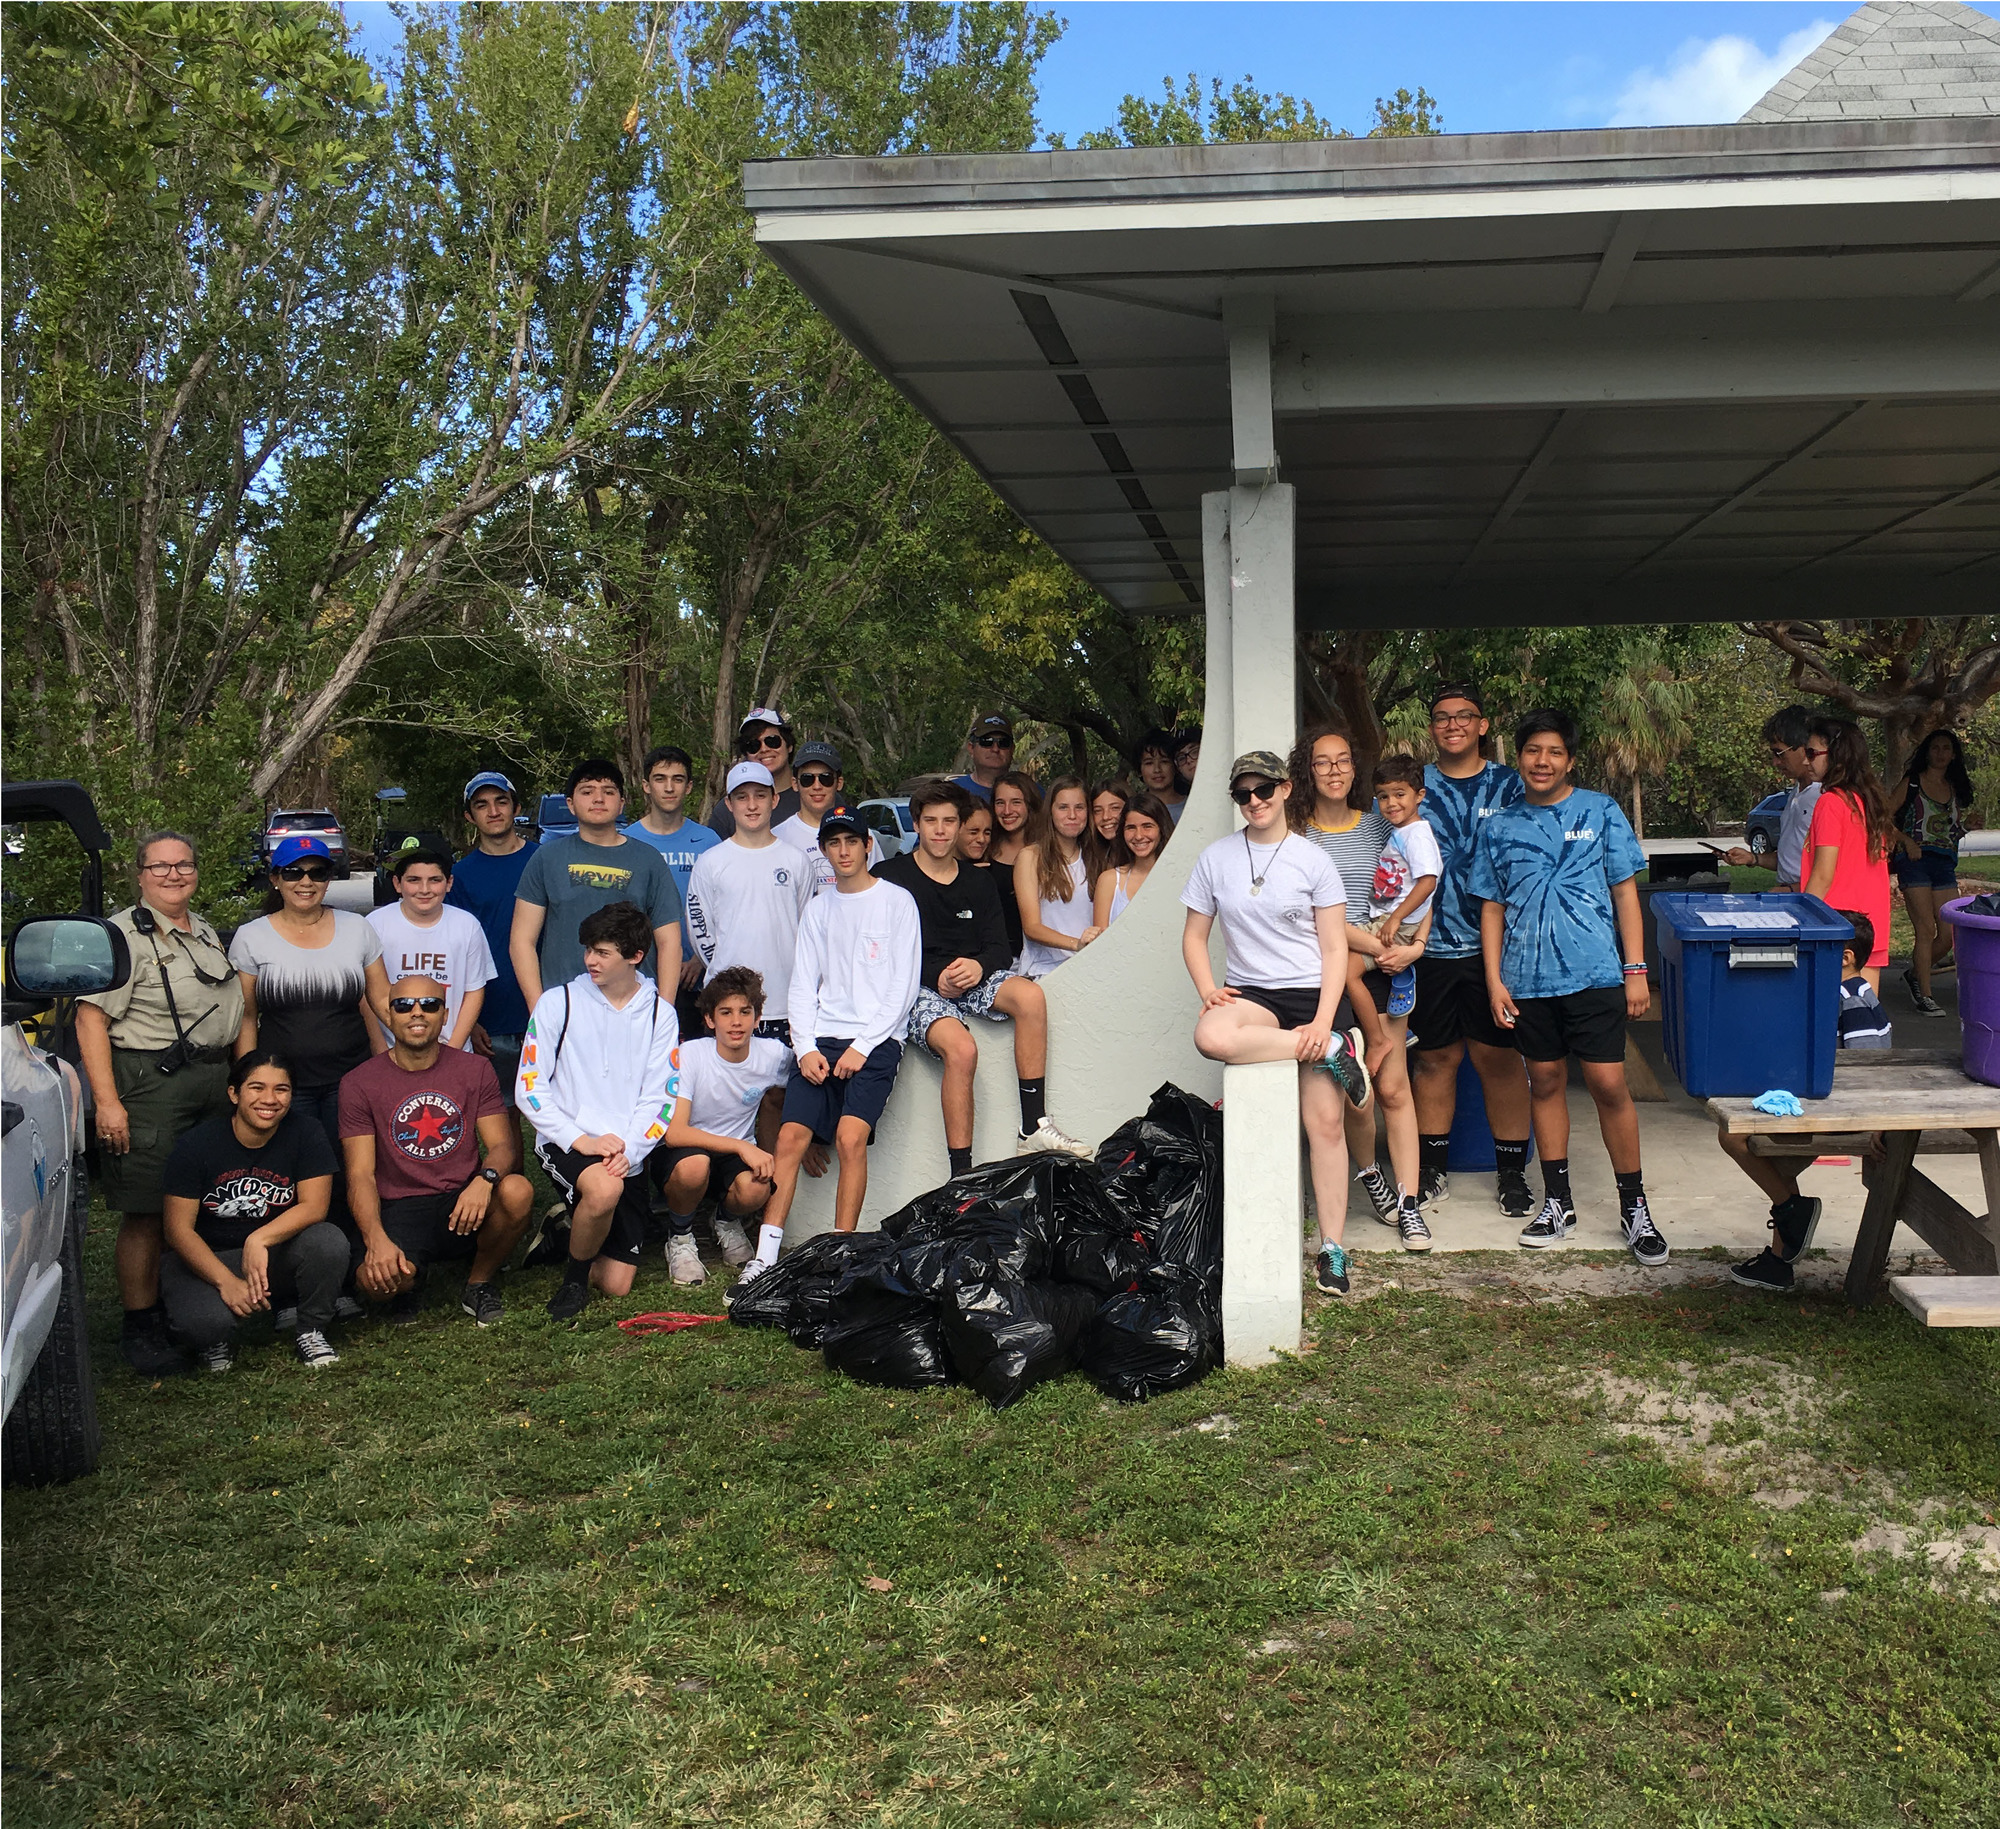 A group shot of Volunteers at Bill Baggs Cape Florida State Park